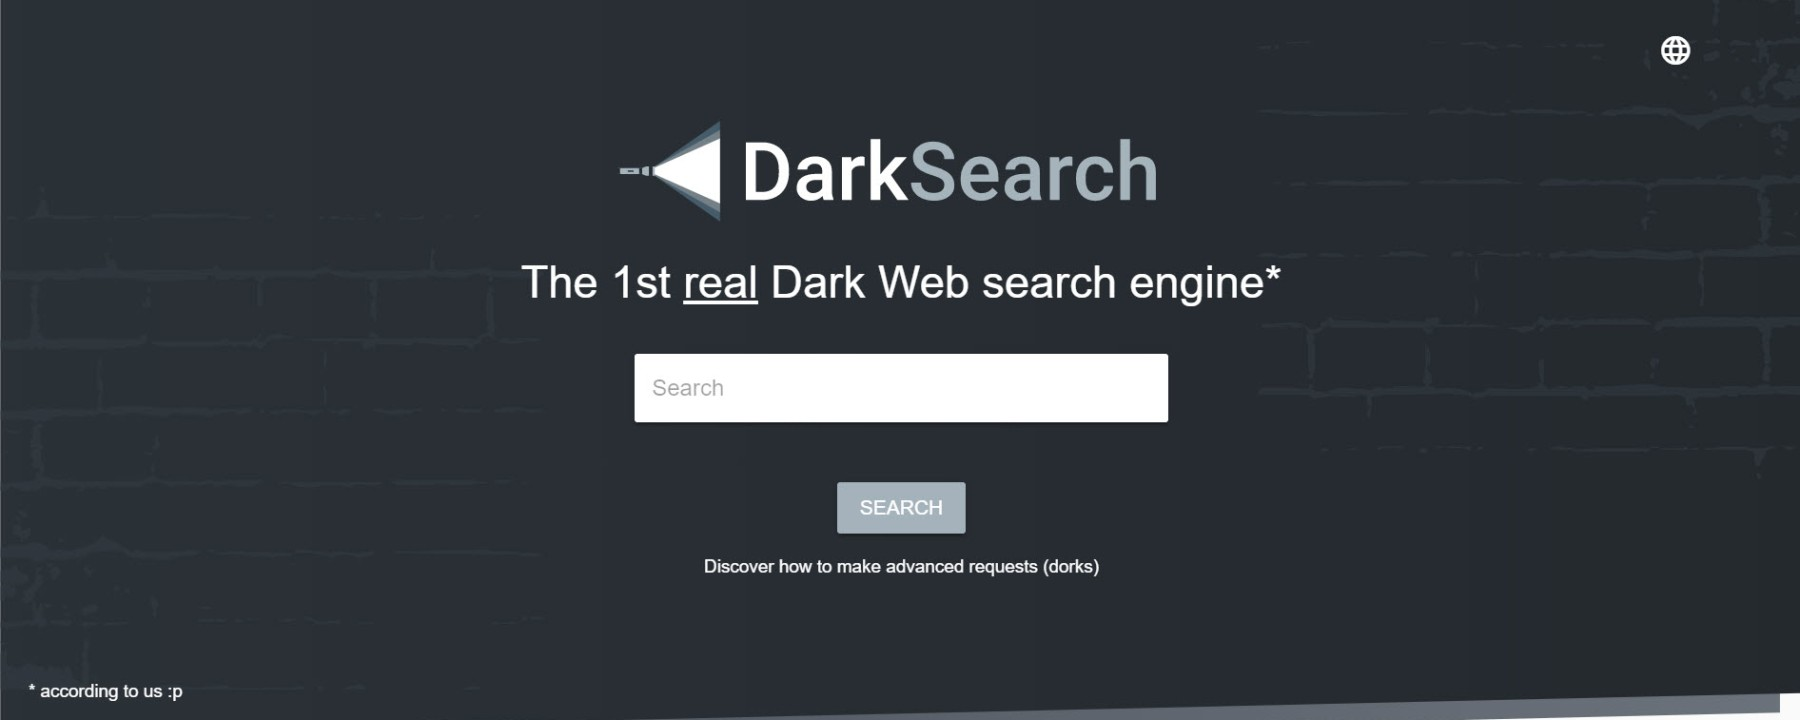 darksearch-el-primer-buscador-real-para-la-dark-web